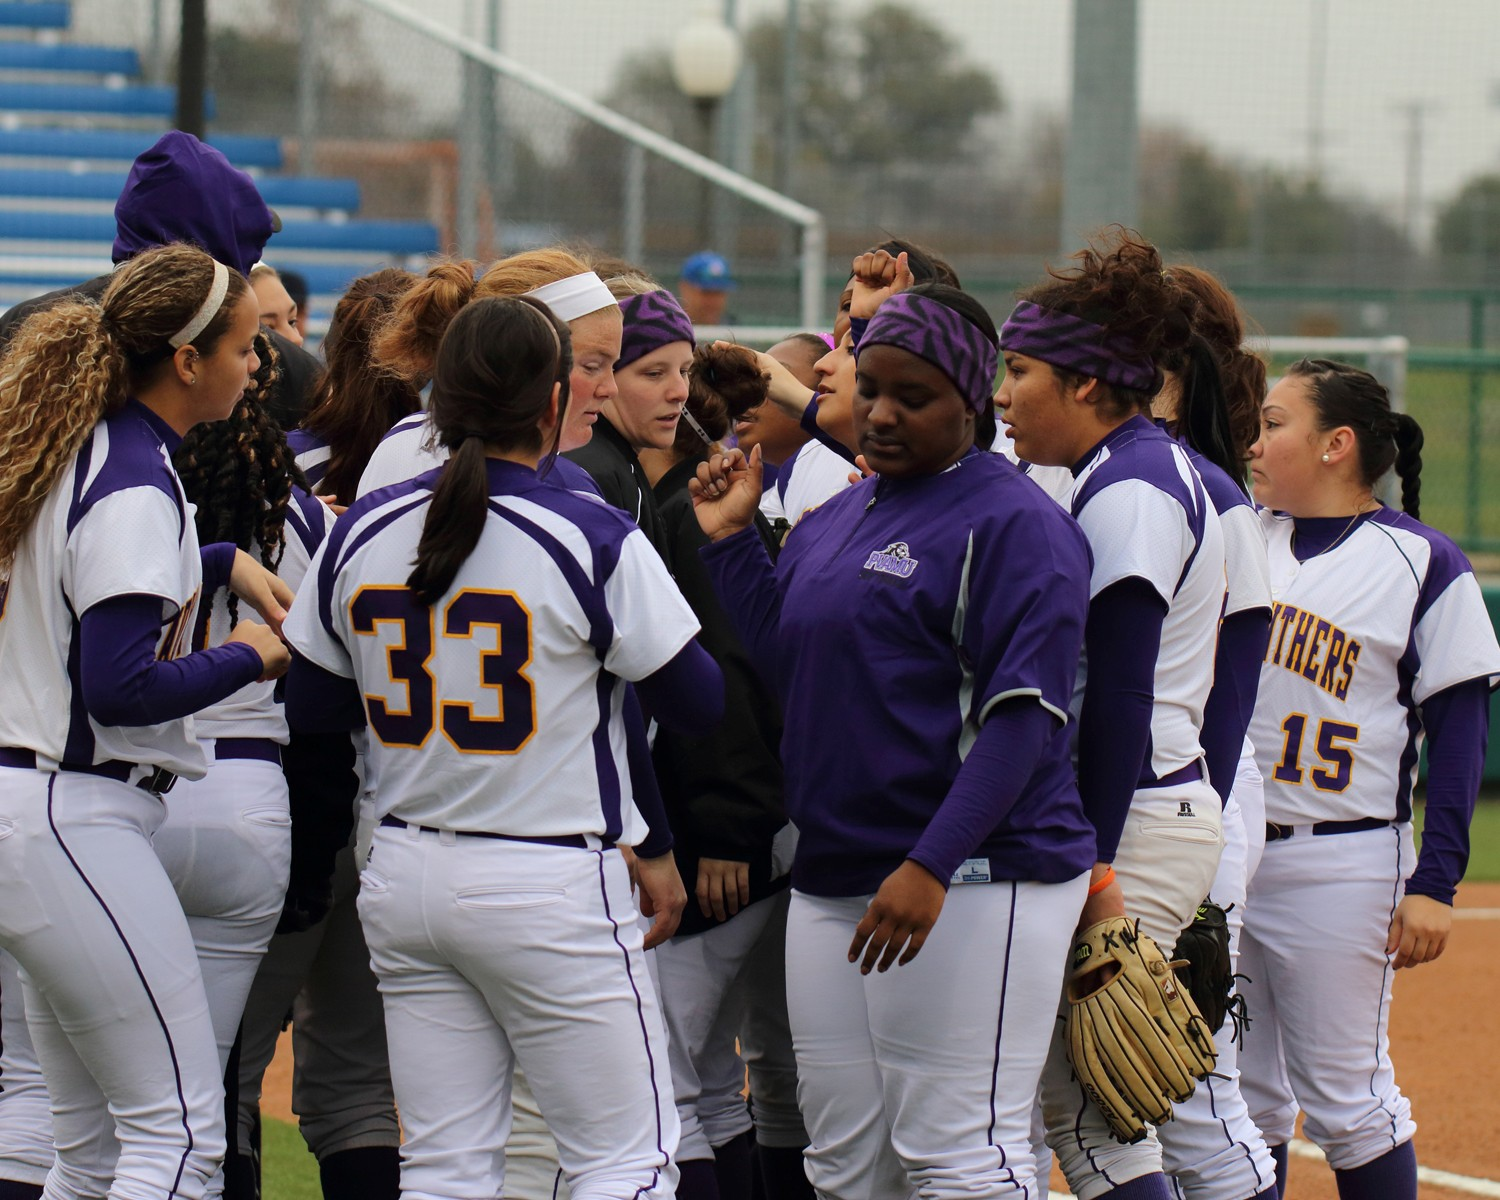 Weather Plays A Huge Role As Lady Panthers Fall To Houston-Victoria